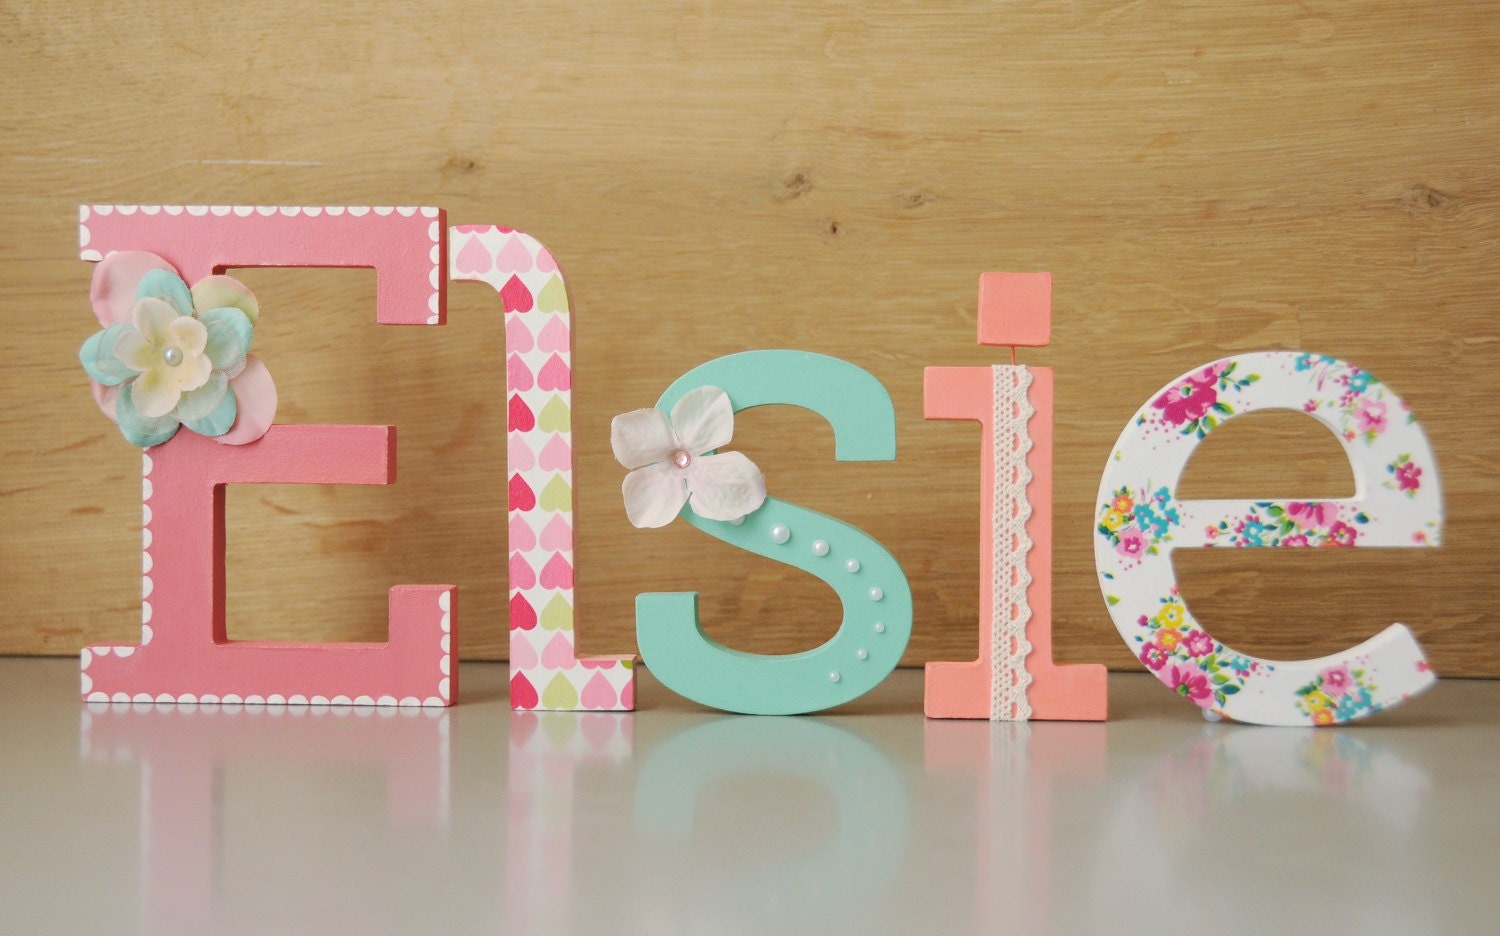 Wooden Letter Name // Hand Painted And Decorated Wooden